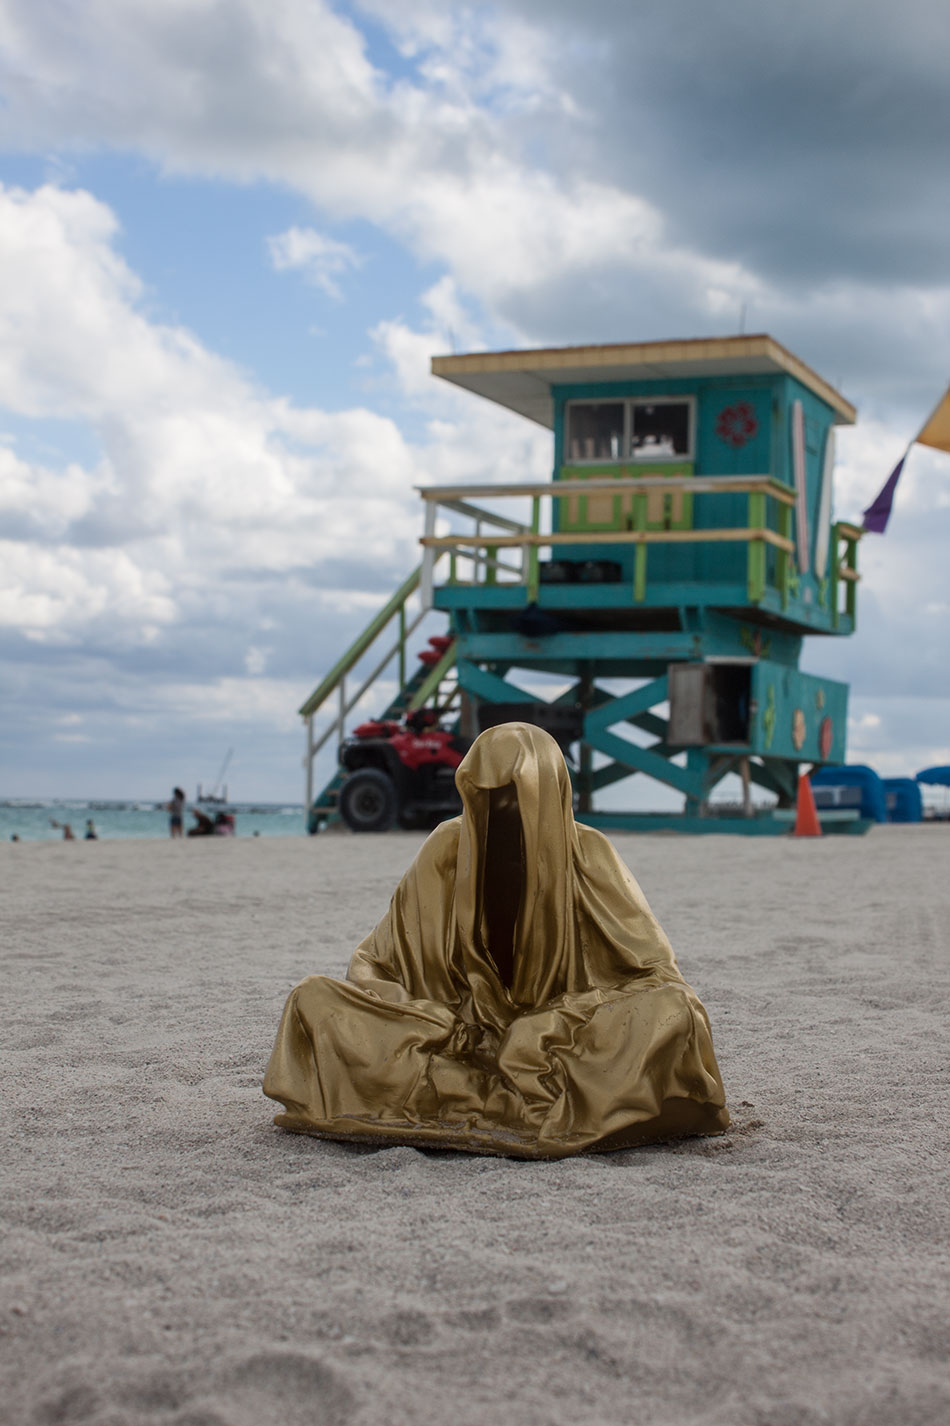 public-art-basel-miami-beach-fair-usa-florida-guardians-of-time-manfred-kili-kielnhofer-contemporary-fine-art-modern-arts-design-antiques-sculpture-6911